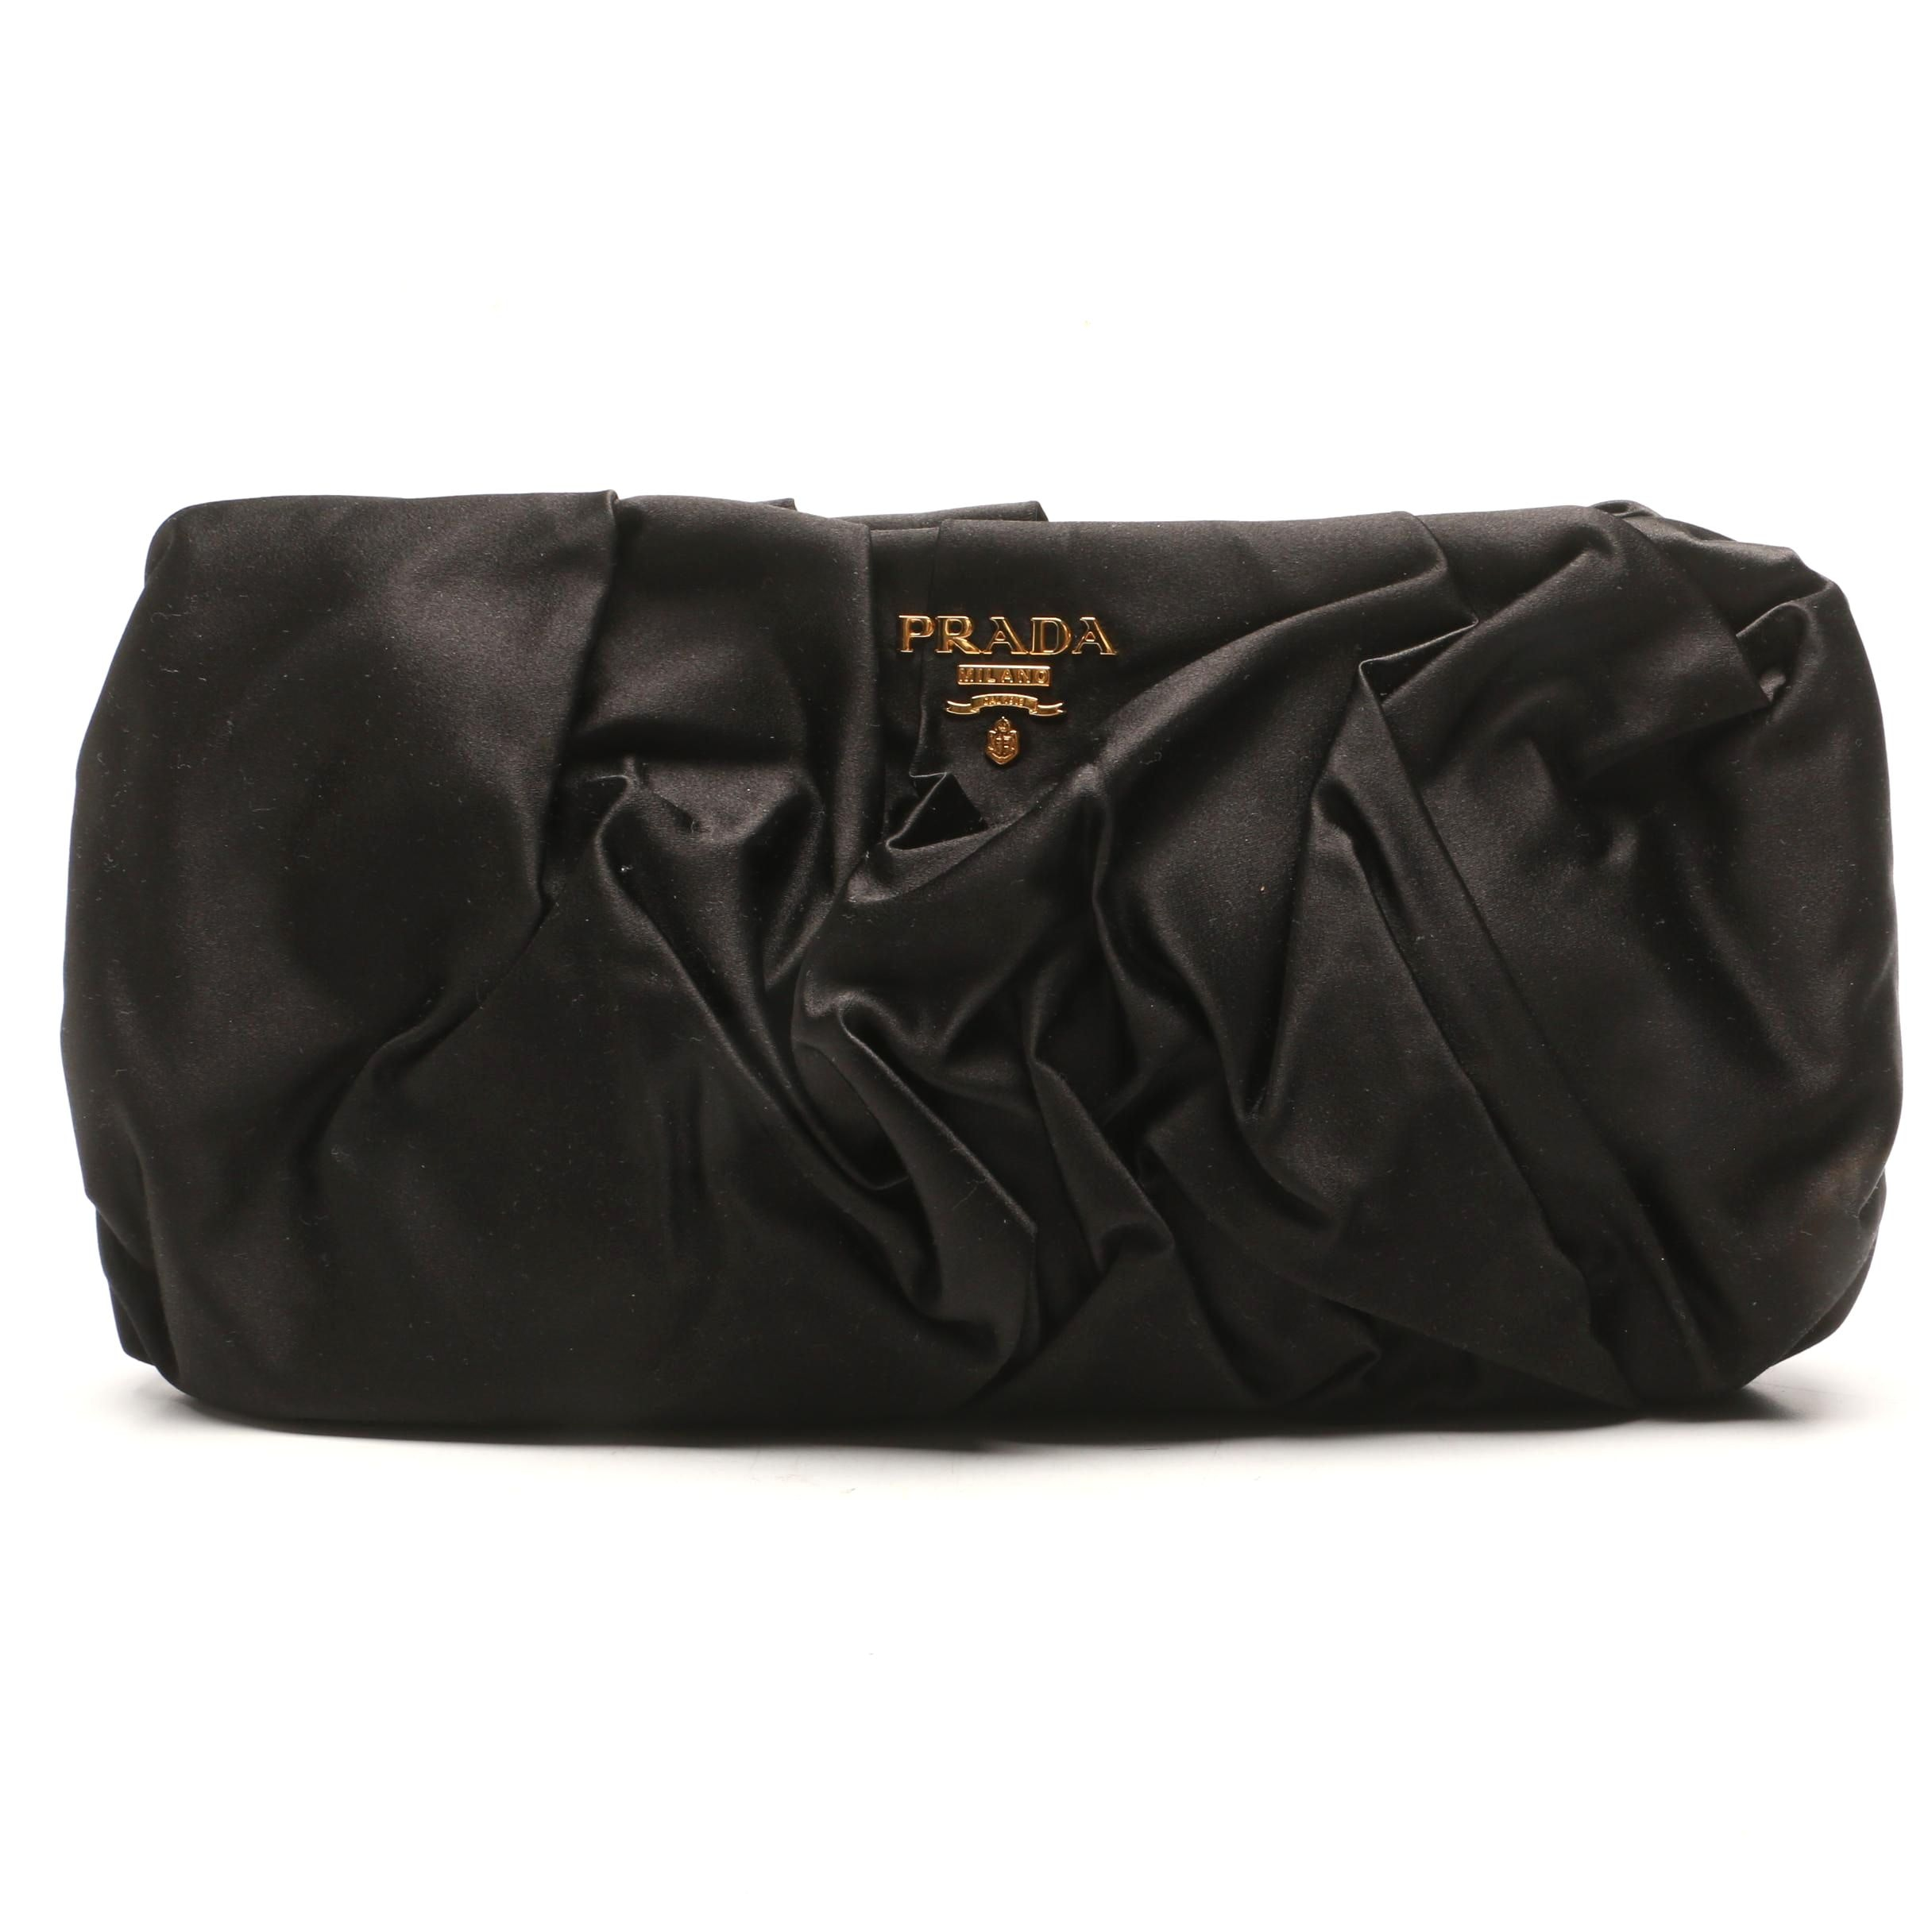 Prada Raso Nero Black Satin Pochette Clutch